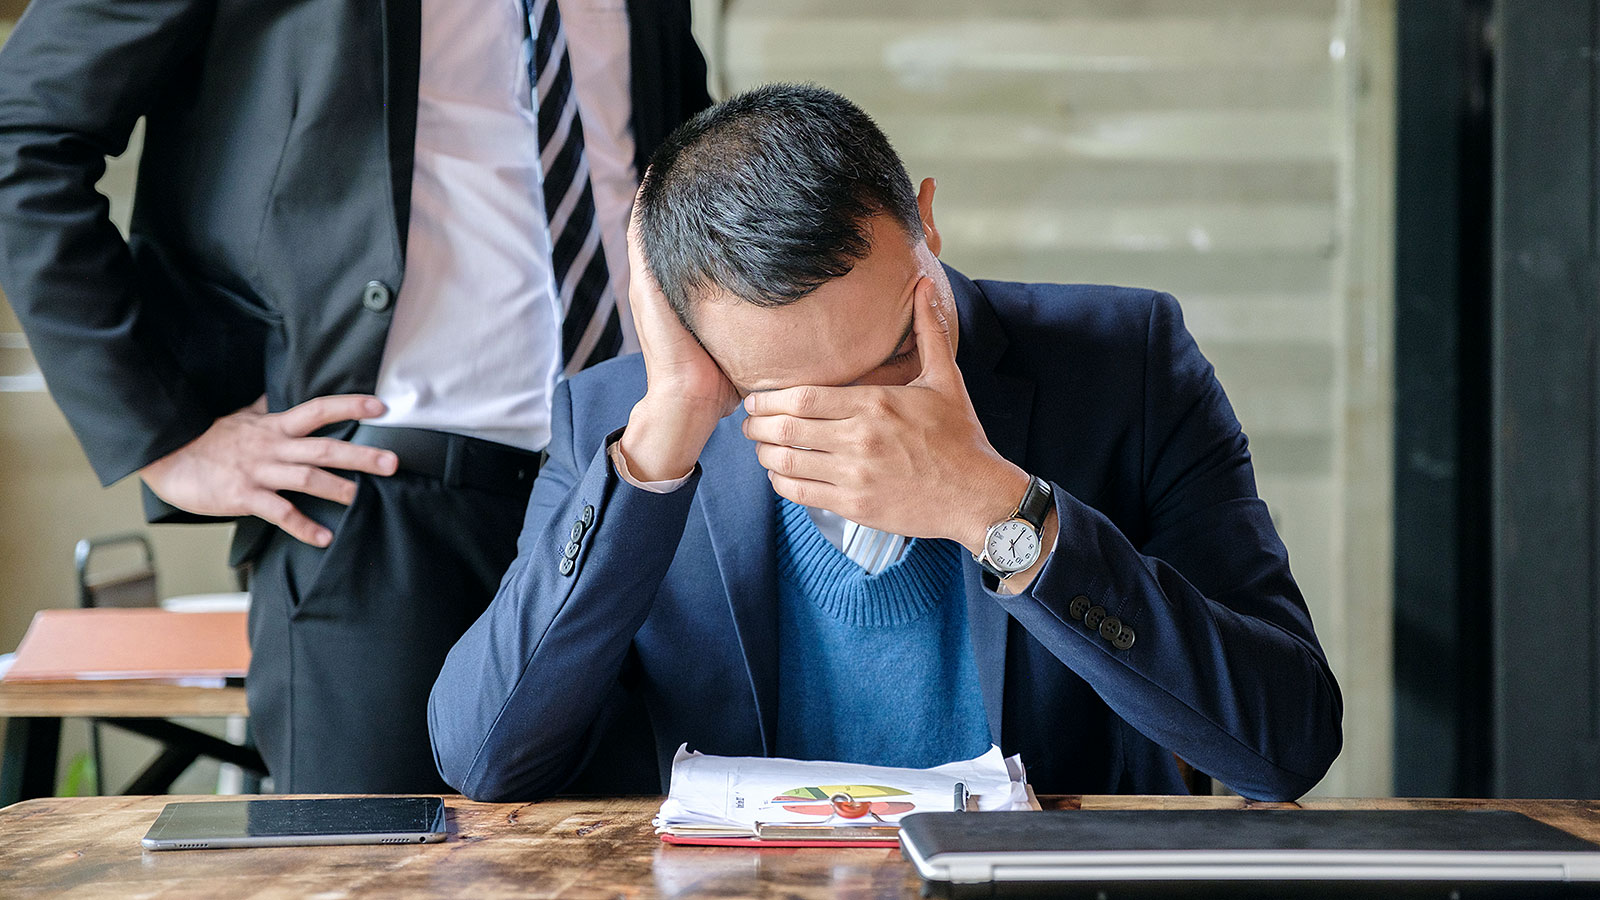 If you say these 6 things, your boss will likely lose respect for you